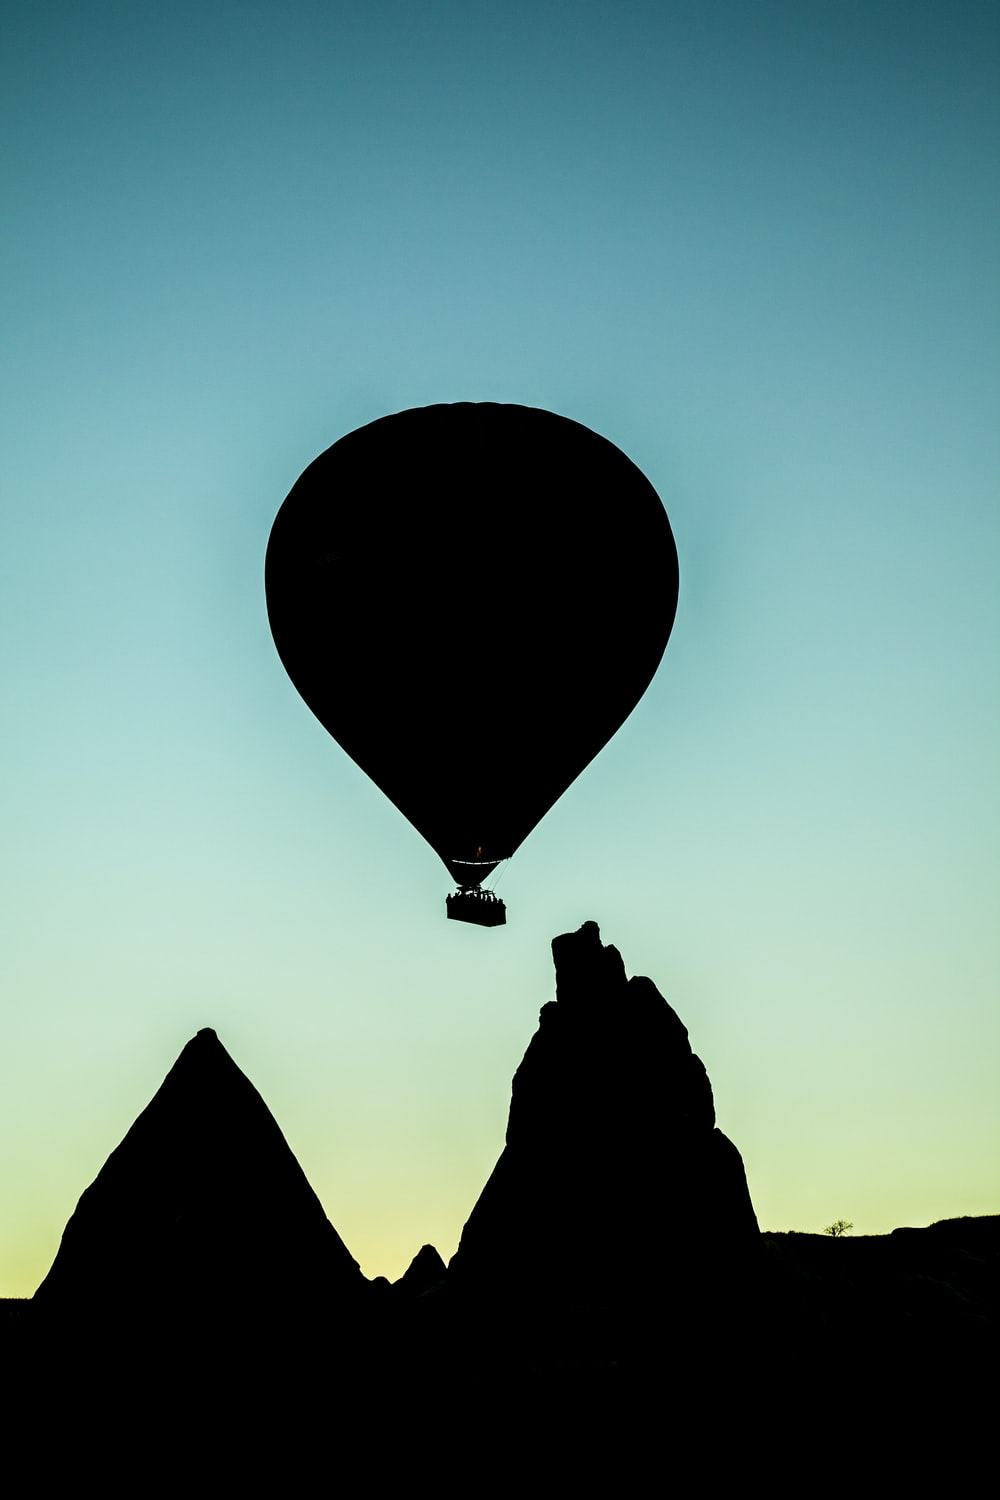 silhouette of hot air balloon flying above rock formation